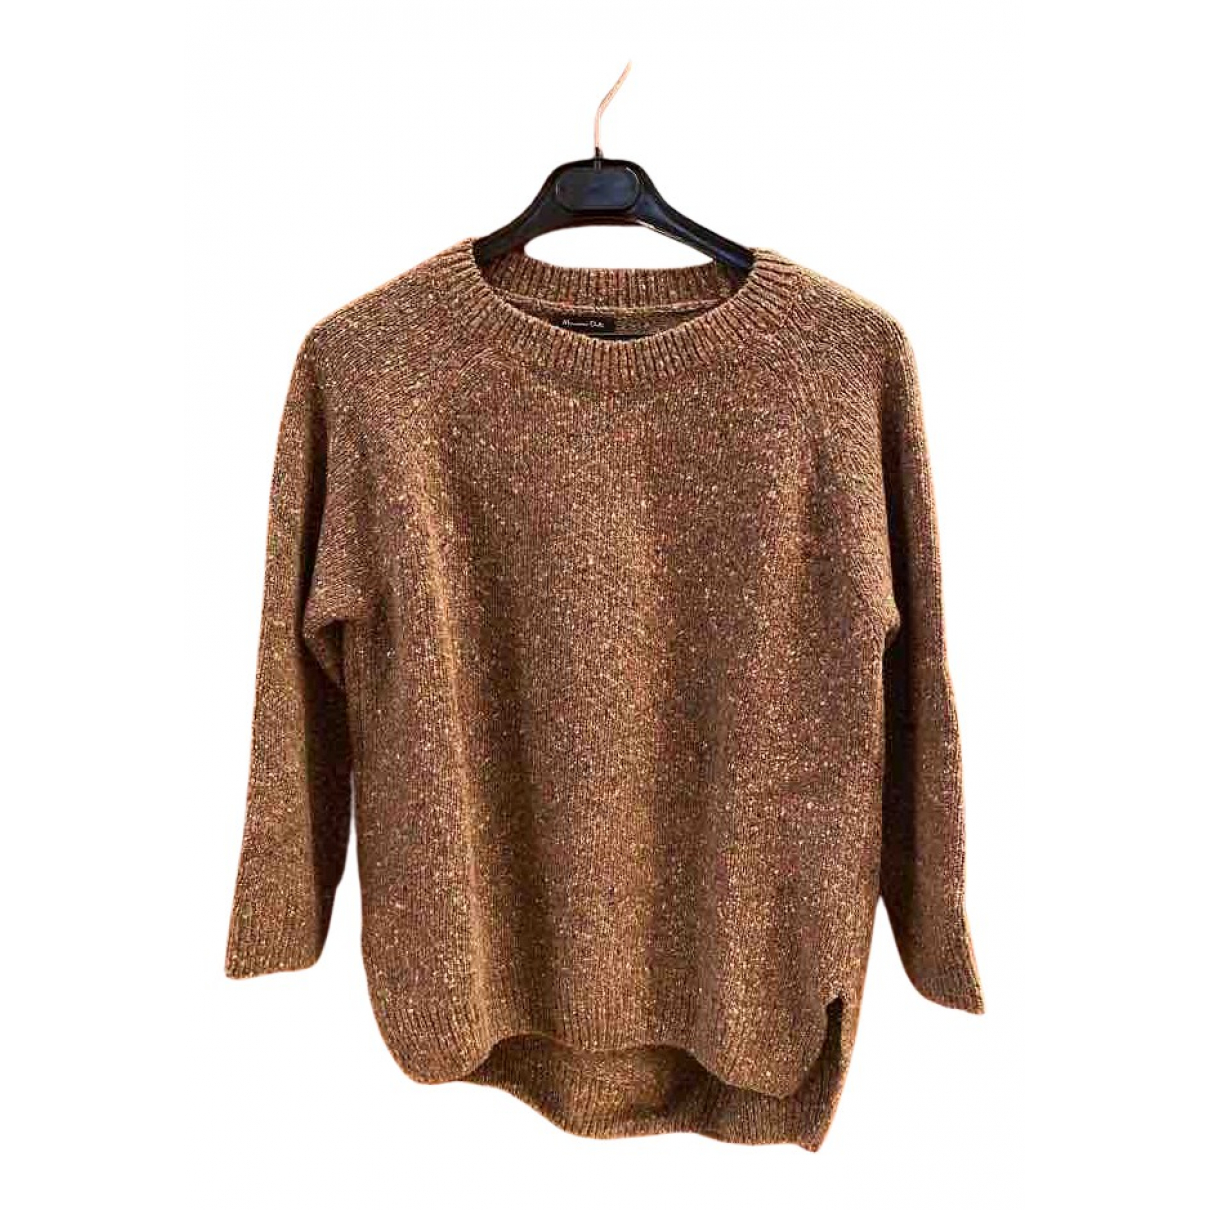 Massimo Dutti \N Pullover in  Braun Wolle